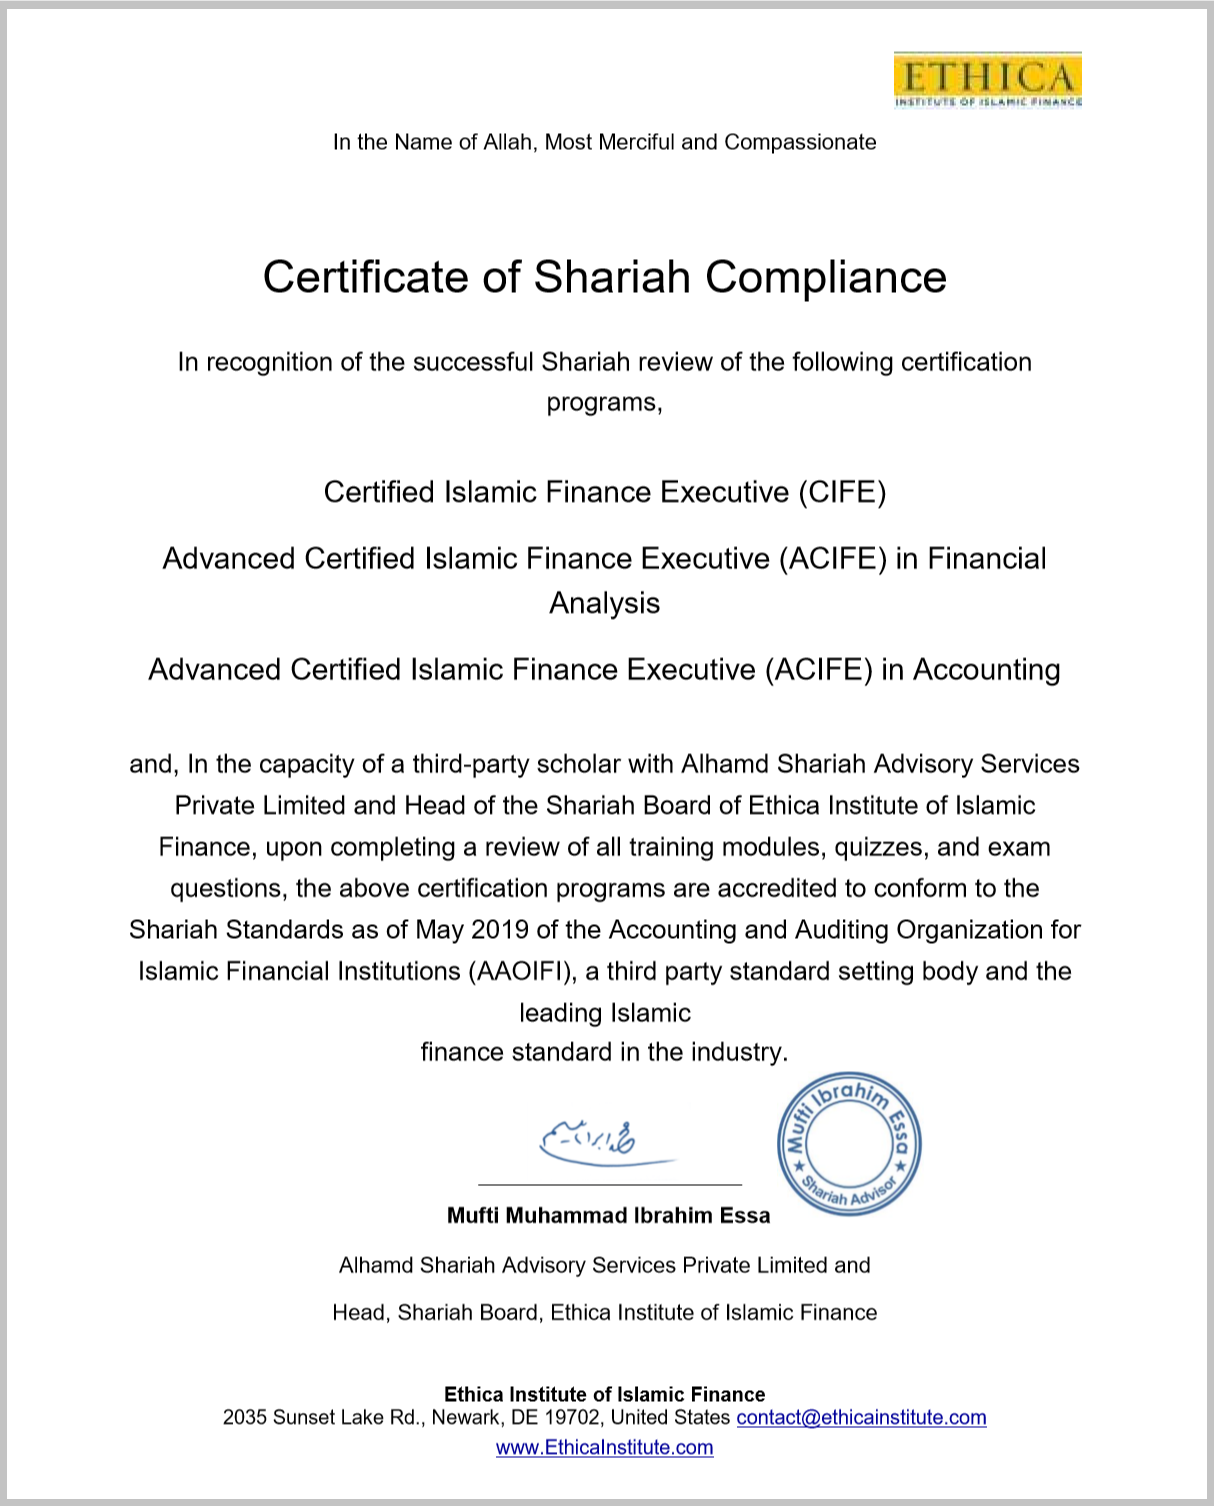 Sharia Compliance Certificate